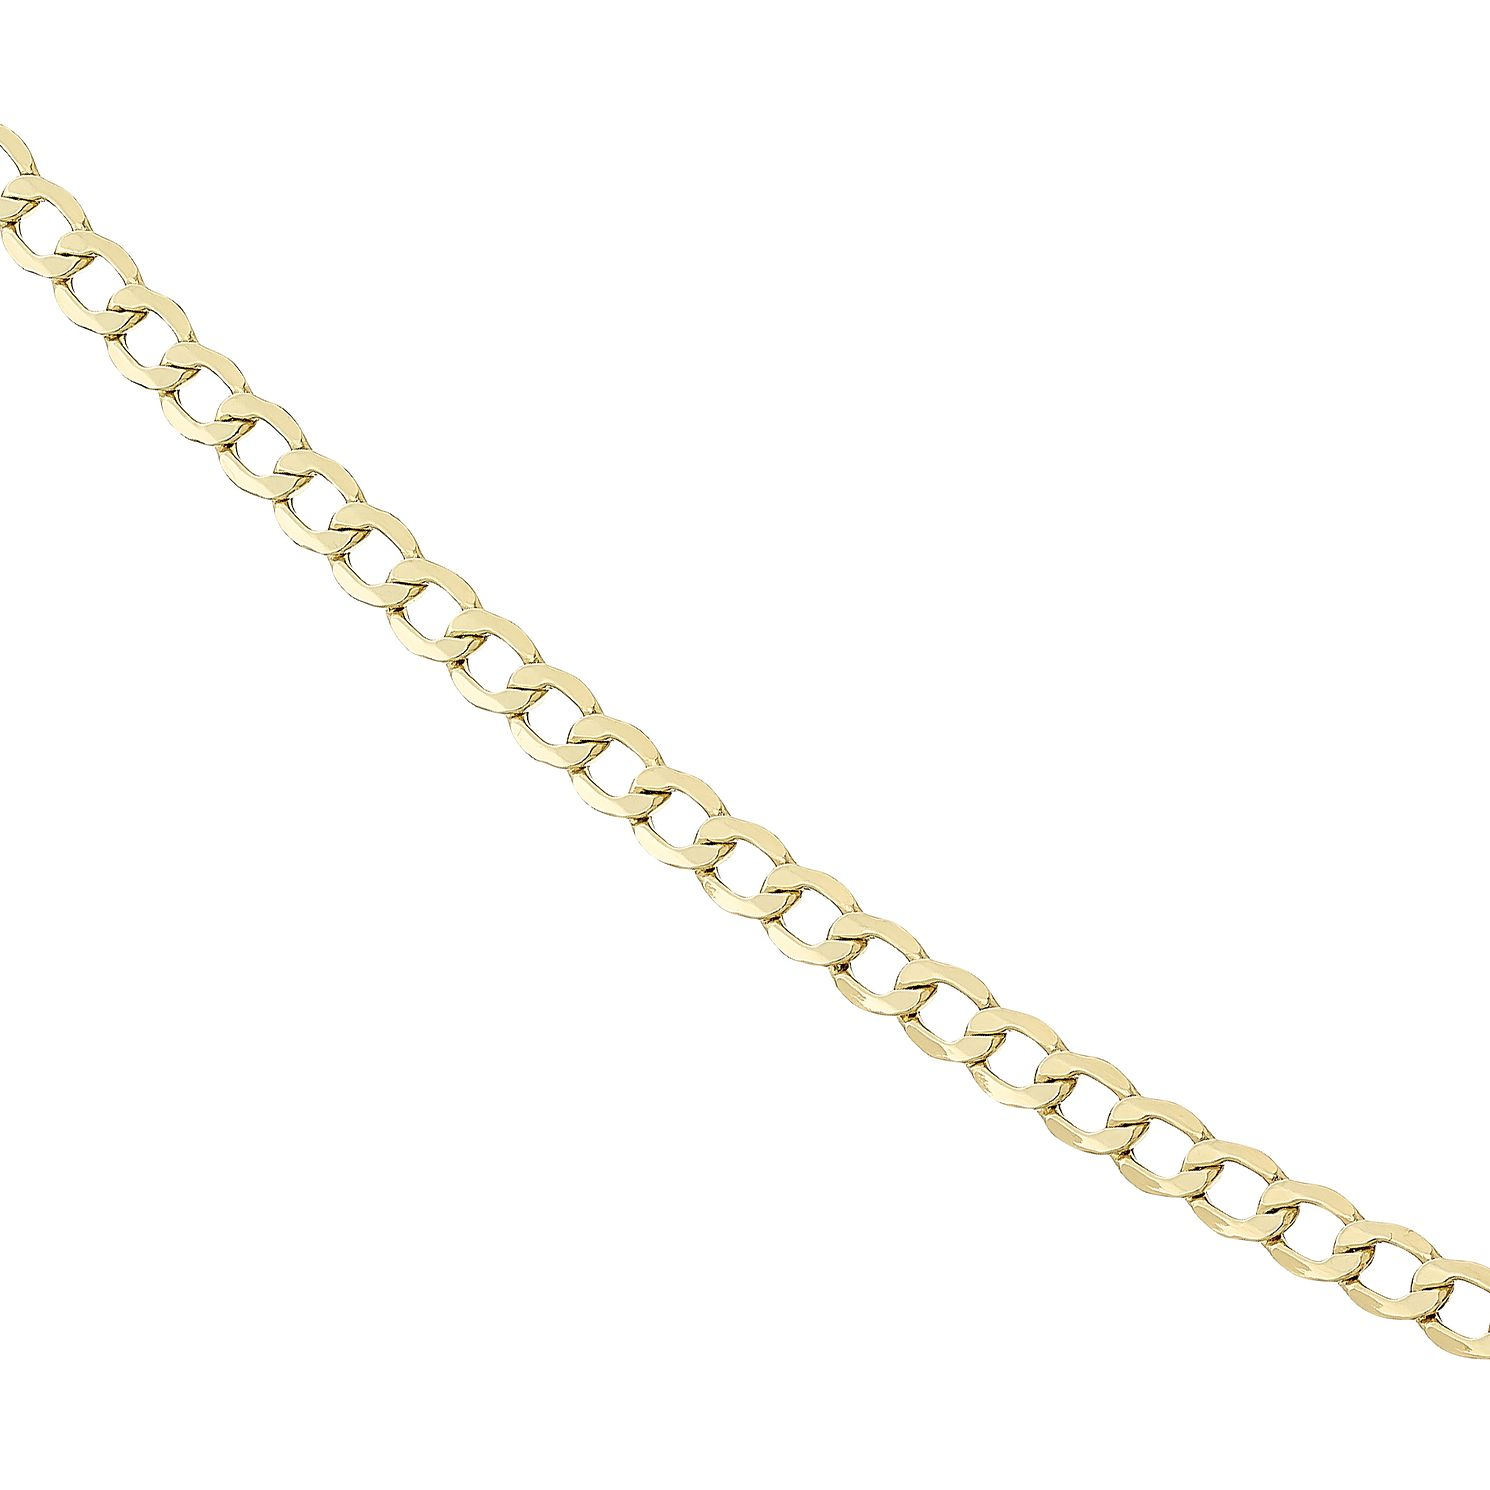 plated chain gold products cuban party gift curb fashion men miami new chains necklace link wholesale jewelry